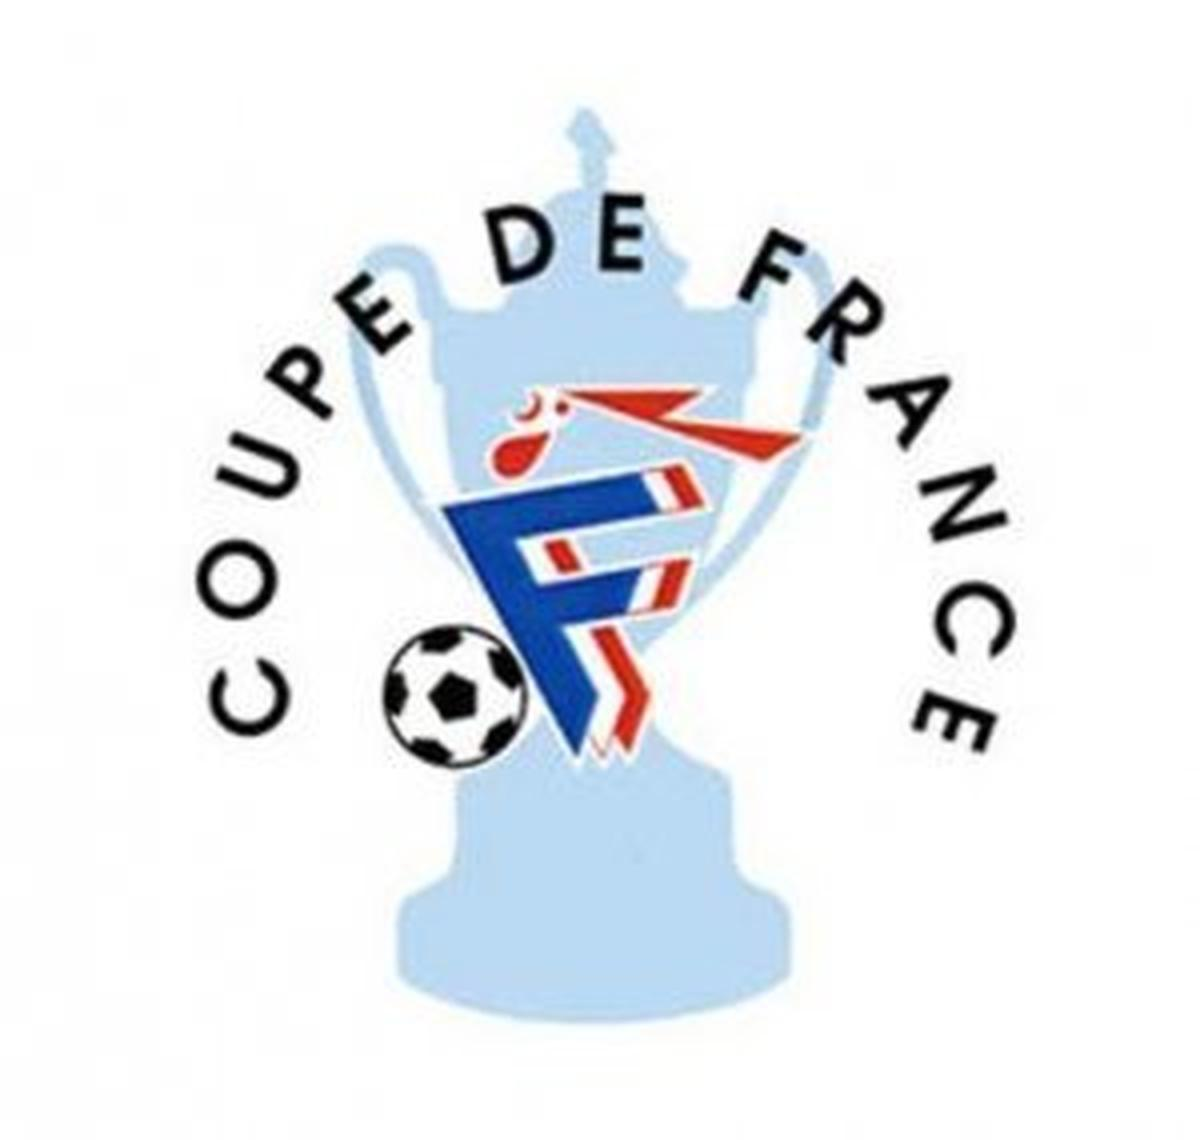 Actualit 4 me tour de la coupe de france raon club de football association sportive de - Raon l etape coupe de france ...